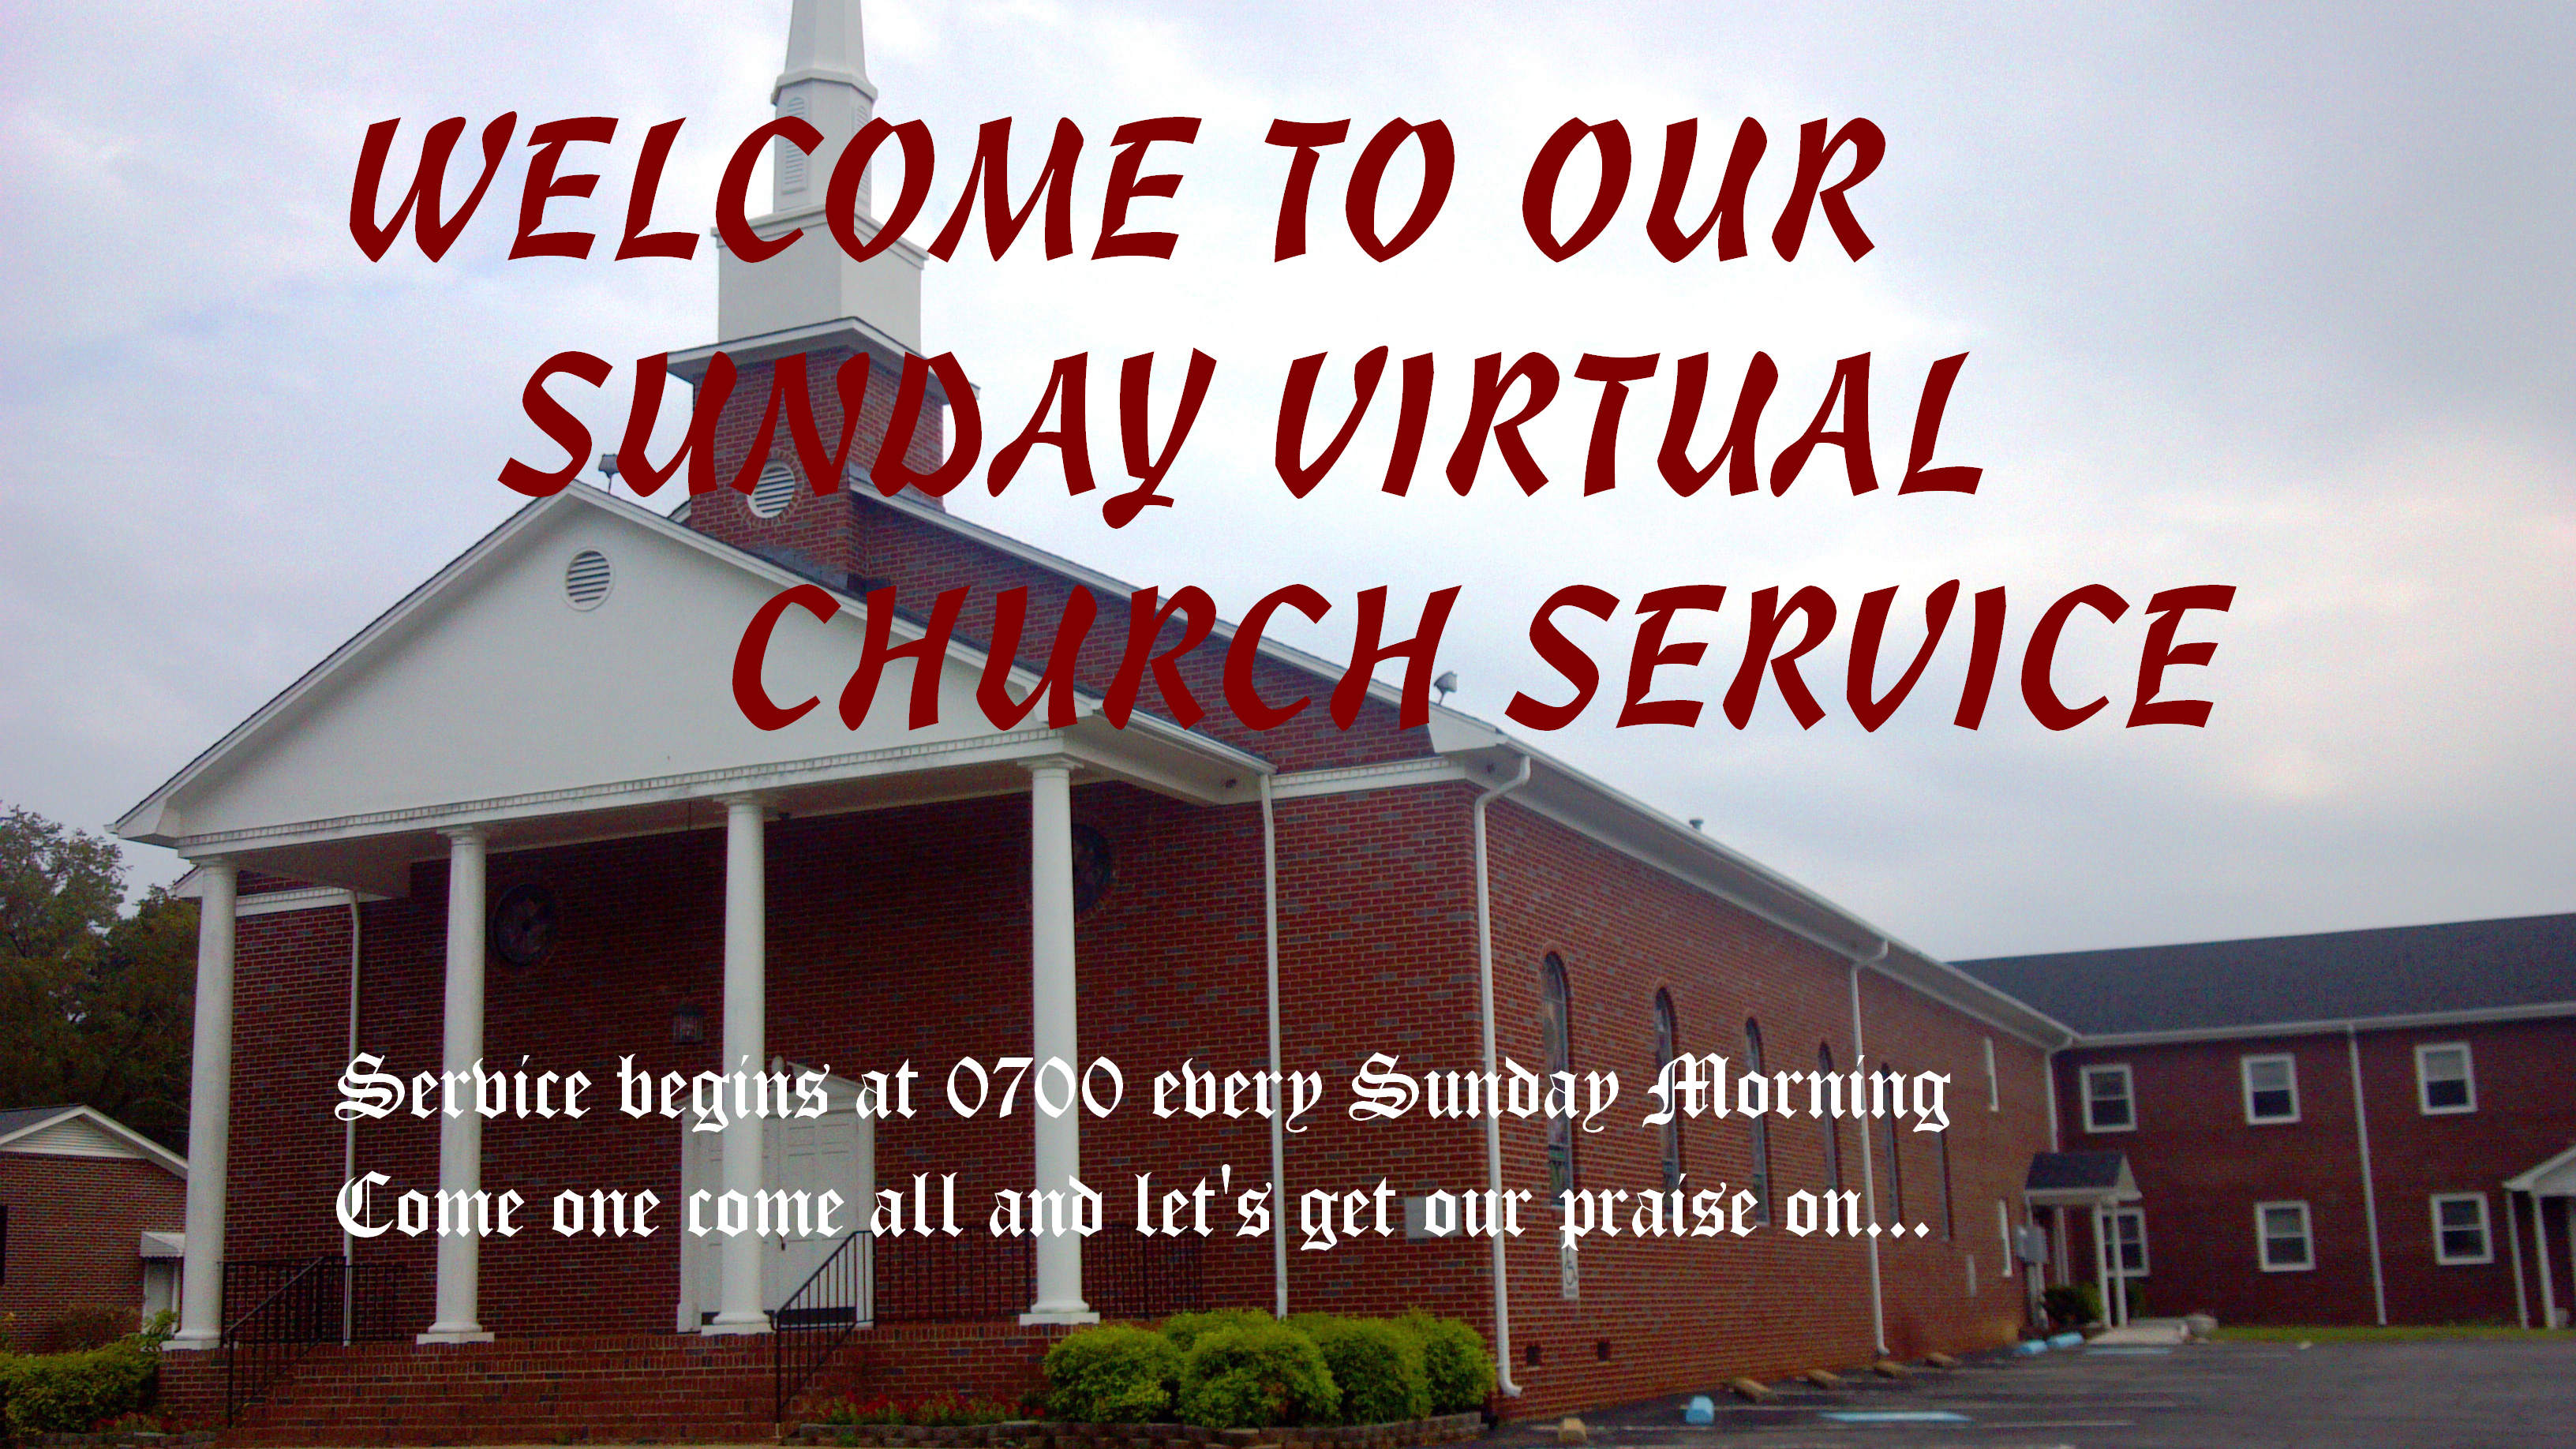 OUR FEATURED CHURCH THIS SUNDAY IS THE PACOLET FIRST BAPTIST CHURCH PACOLET, S.C. (PHOTO BY PASTOR DAVIS)